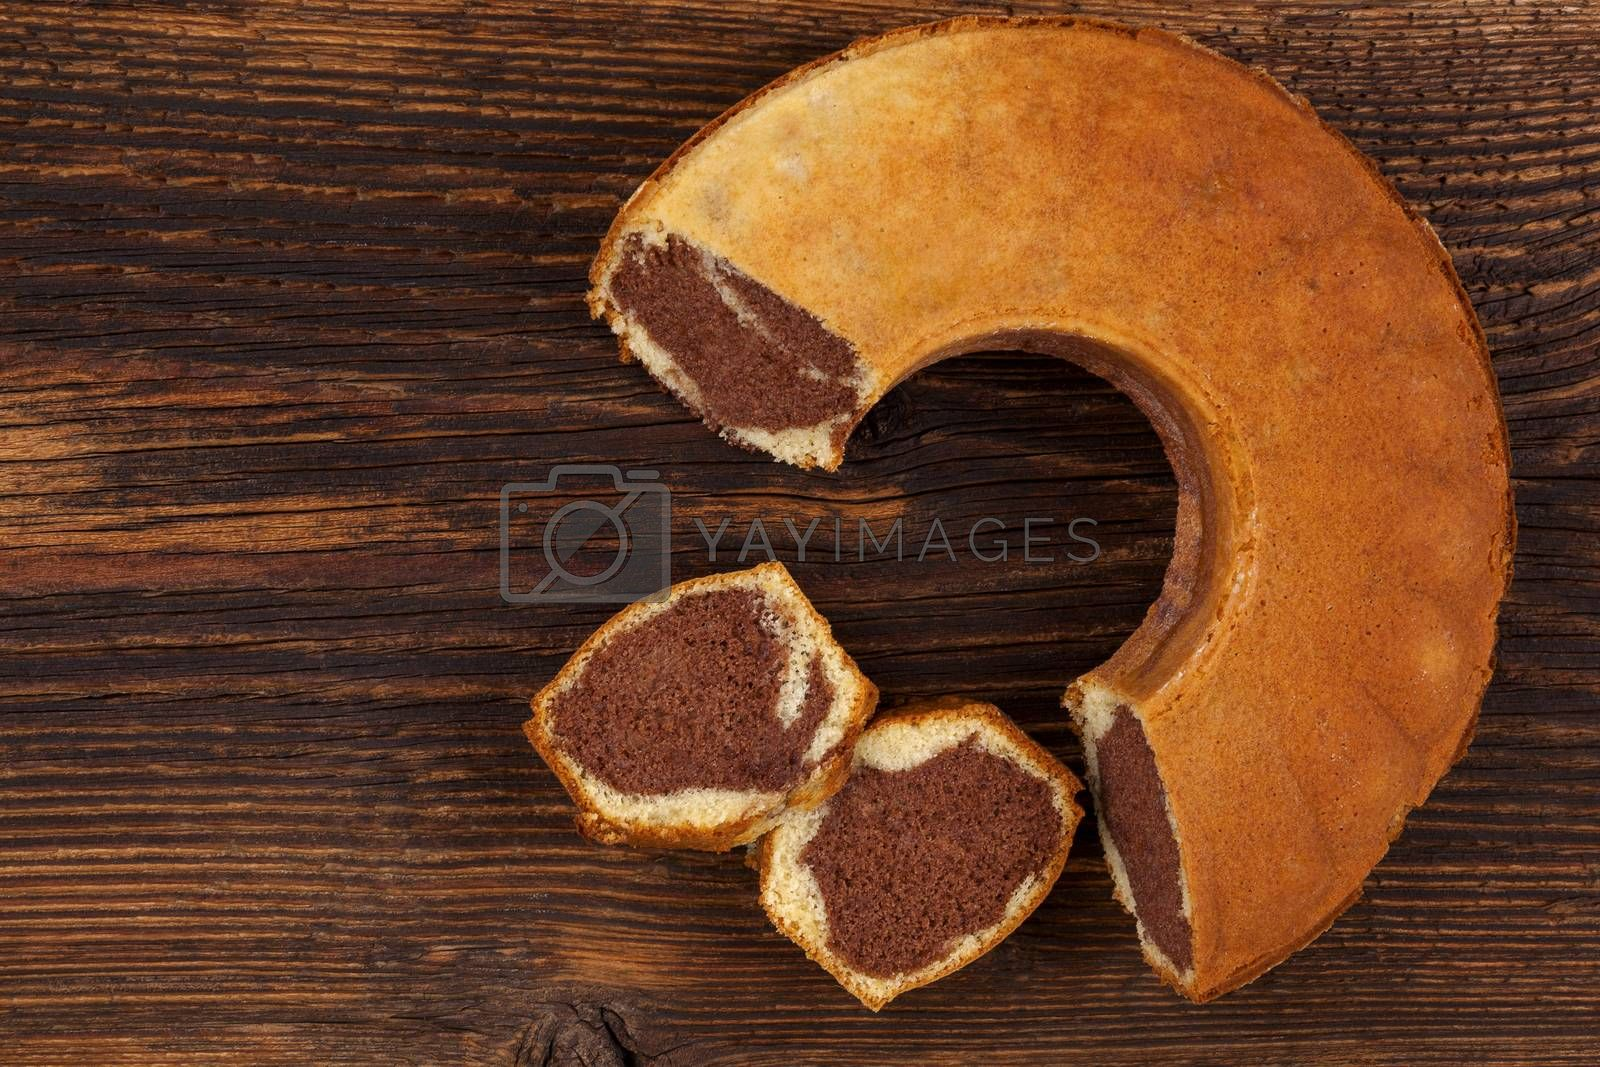 Delicious bundt cake on wooden table, top view. Traditional european sweet bundt cake.